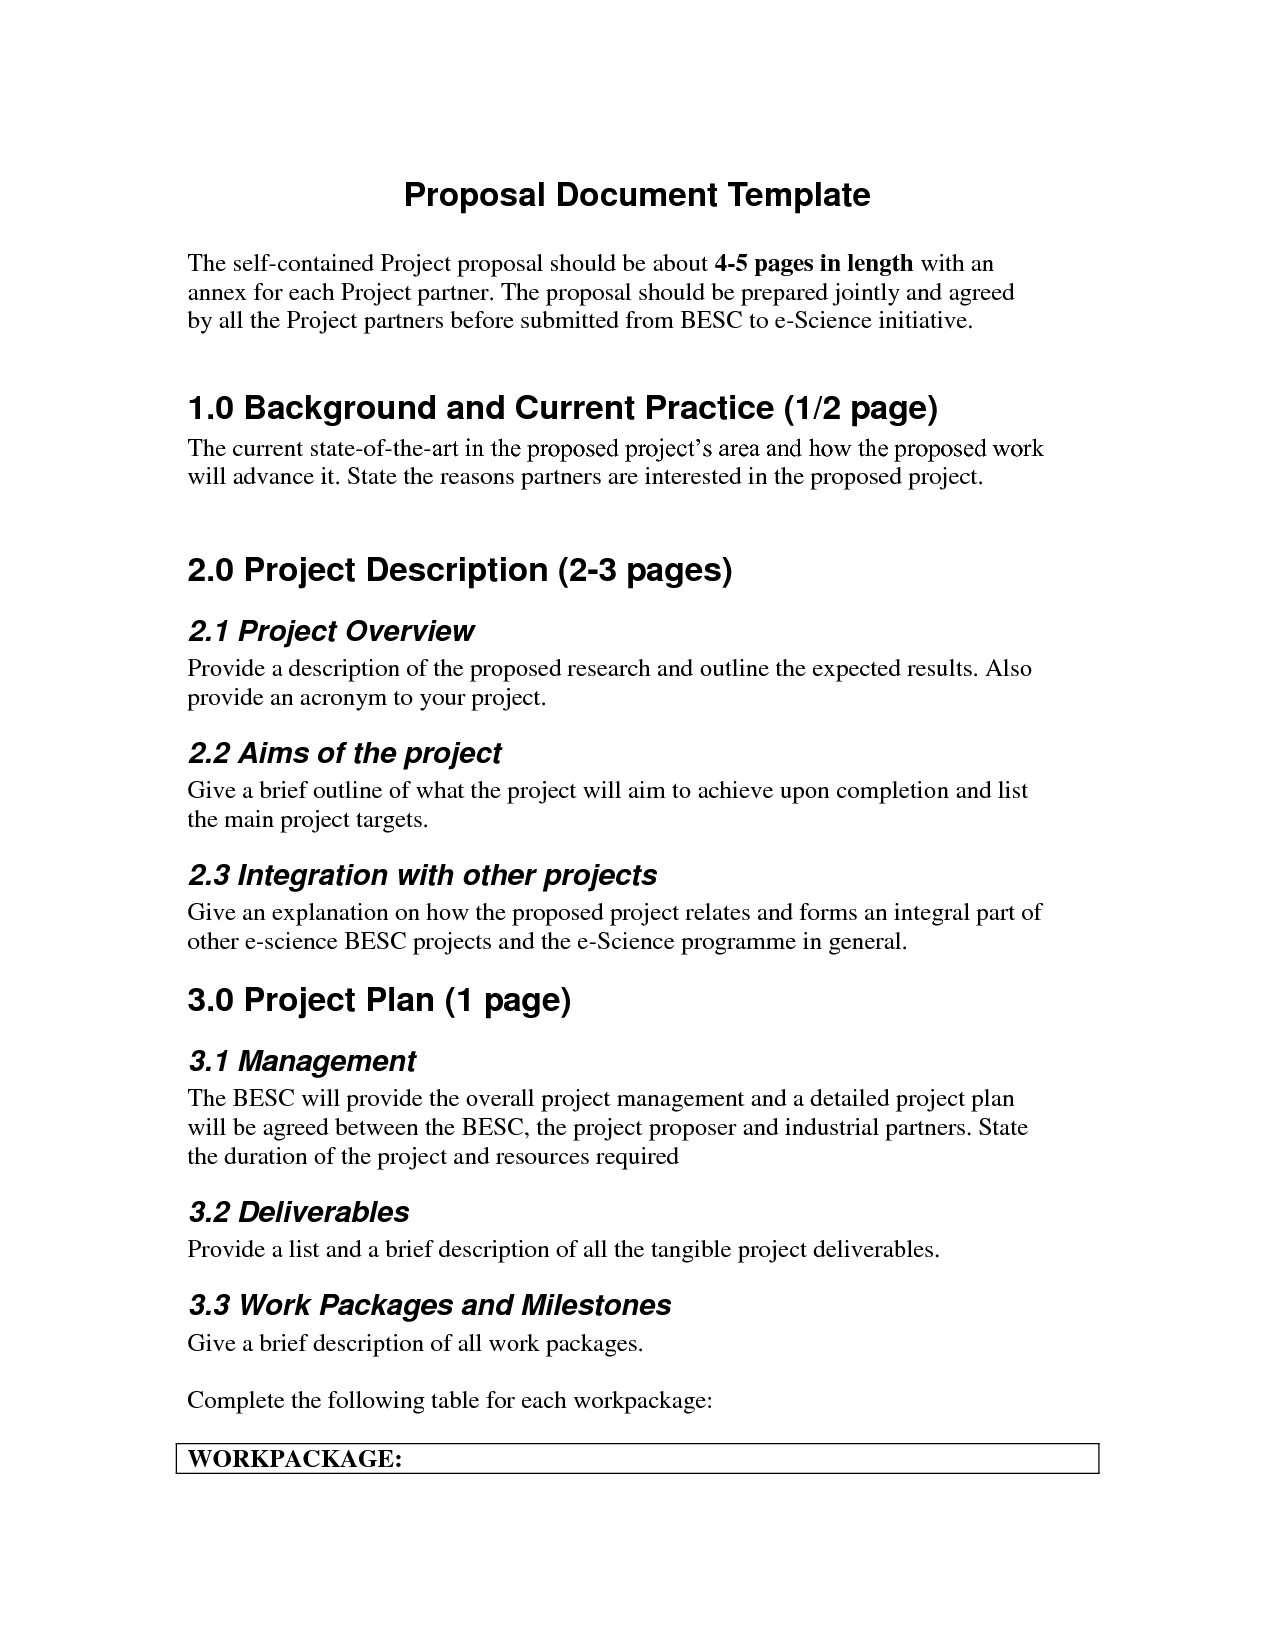 Custom Essay Writing Service Essay Proposal Template Proposal Essay Topics Before Students Write A  College Research Paper Who Am I Essay Outline also War On Terrorism Essay Essay Proposal Template Proposal Essay Topics Before Students  Argumentative Essay Model